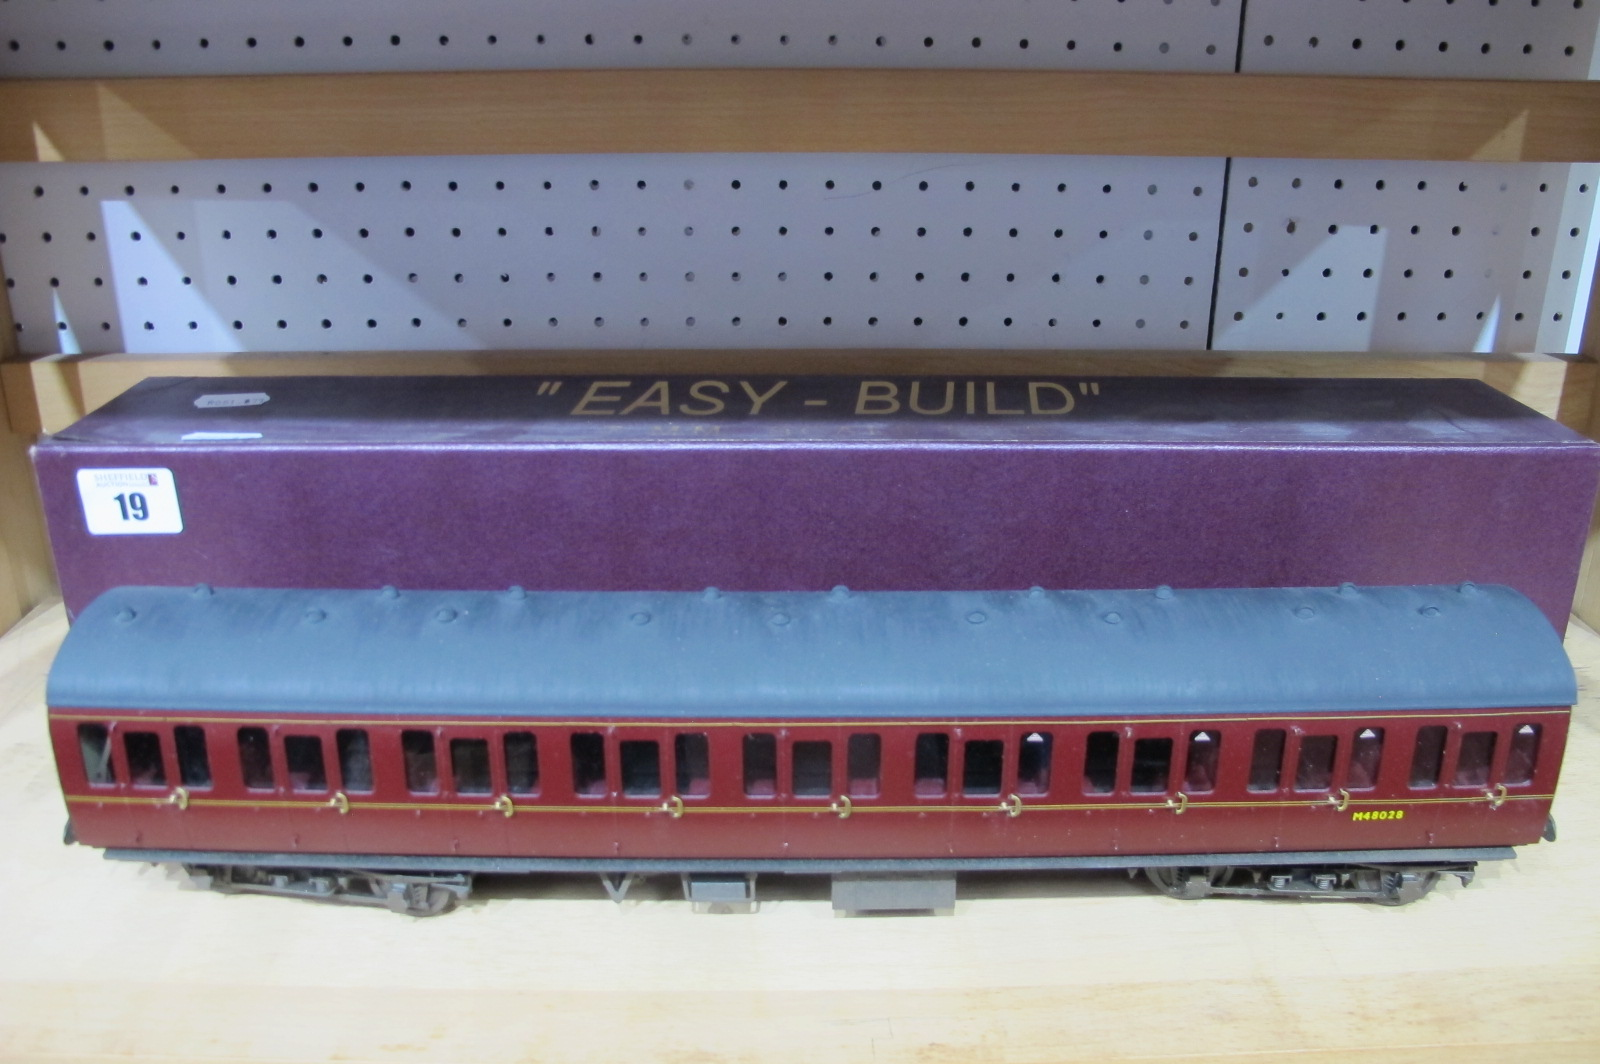 An 'O' Gauge/7mm Midland Region Easy Build Eight Wheel Coach with Interior Detail, boxed.